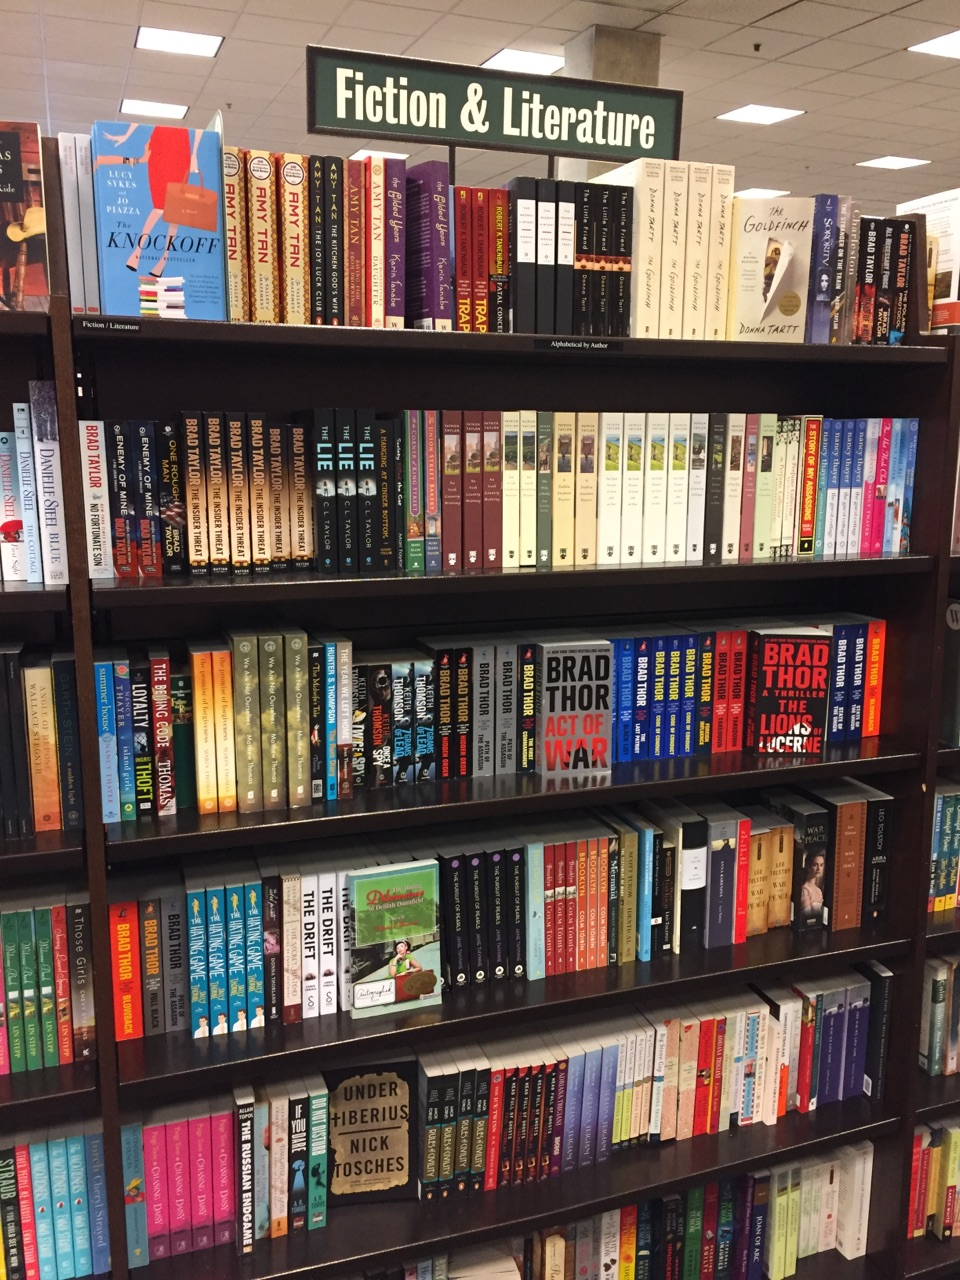 How Barnes & Noble Helps Indie Authors Find a Spot on Their